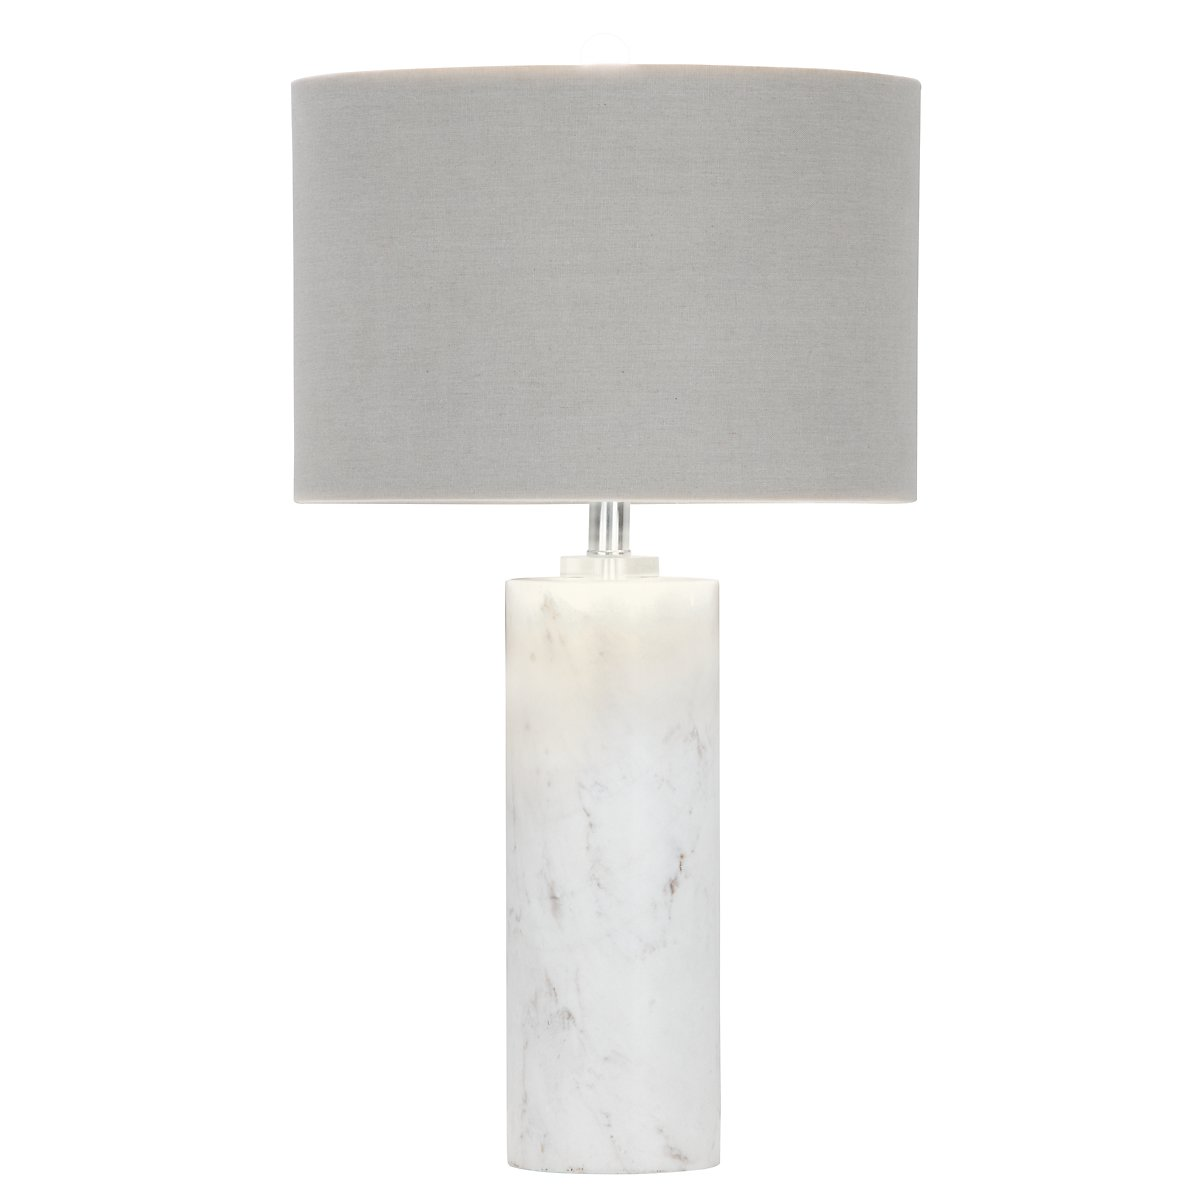 City furniture raywick lt gray table lamp raywick light gray table lamp geotapseo Images